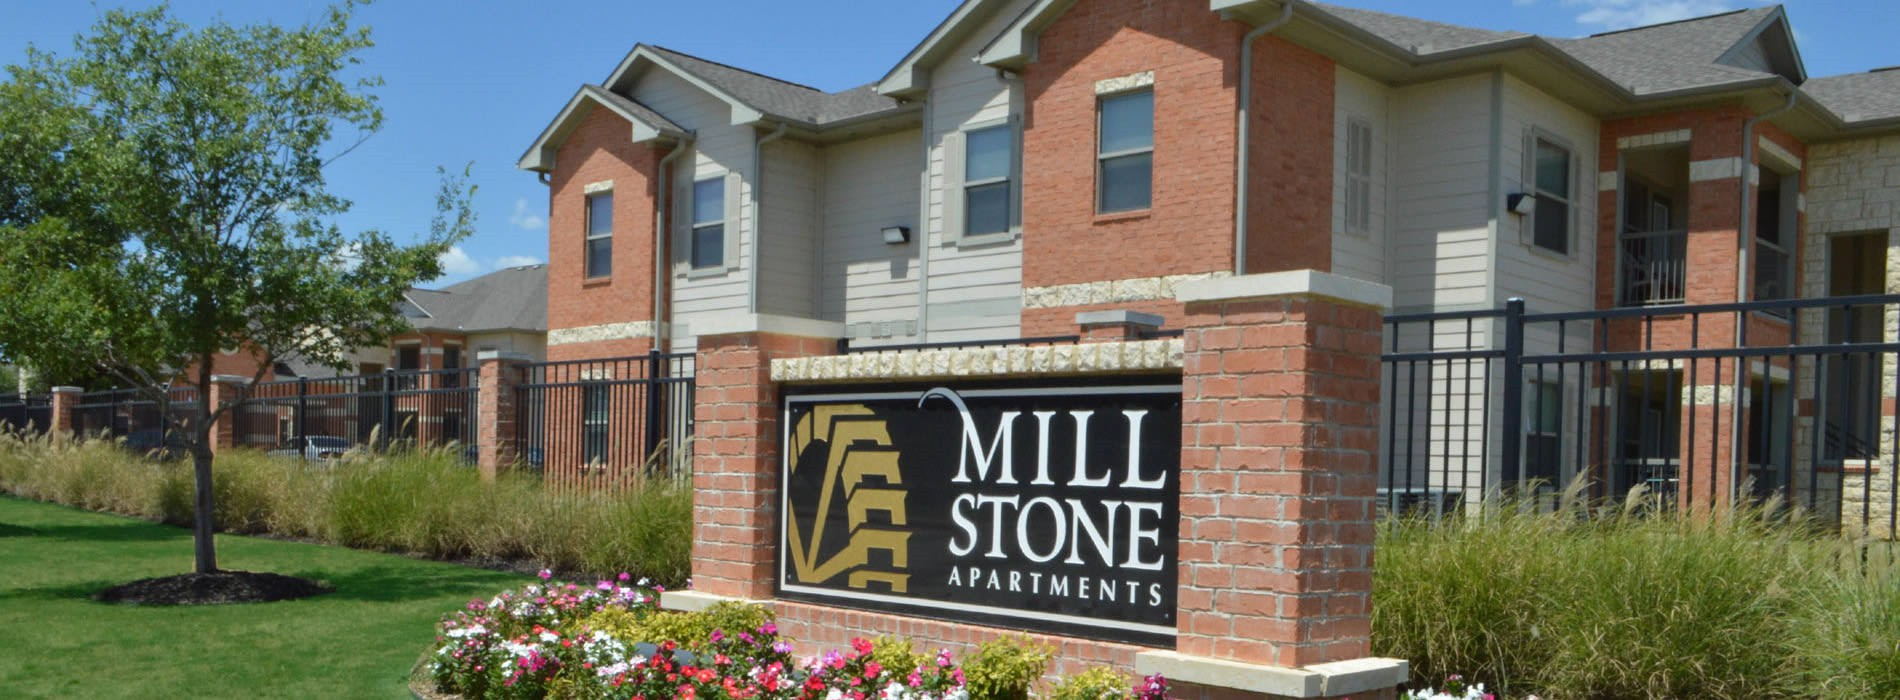 Welcome To Mill Stone Apartments